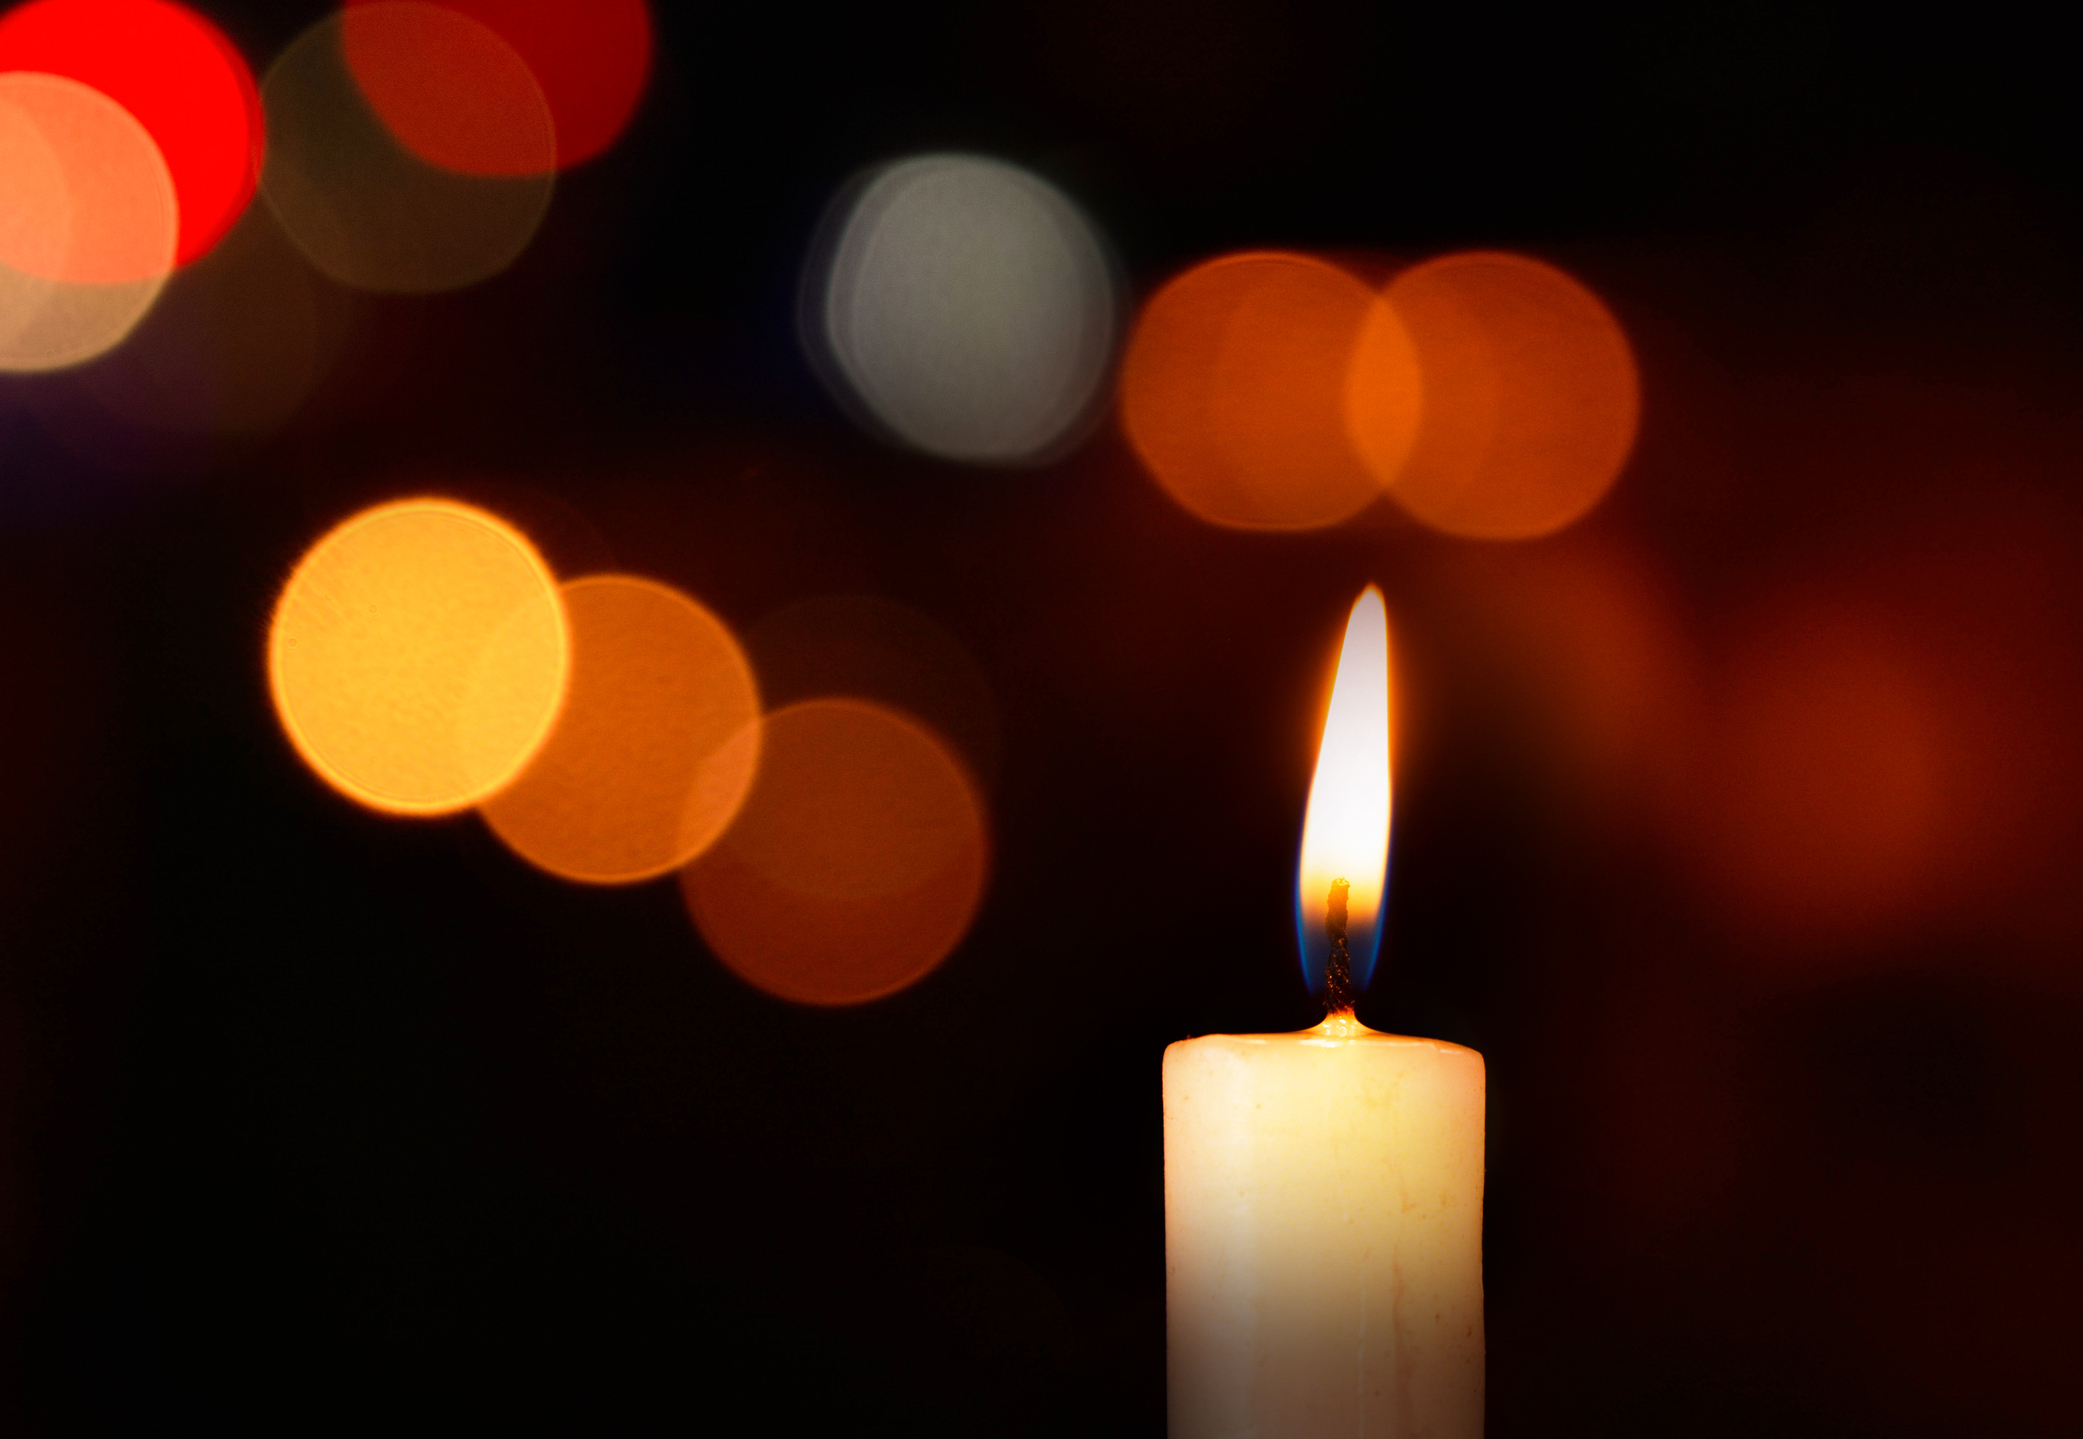 Just Light One Candle This Hanukkah To Help Change The World